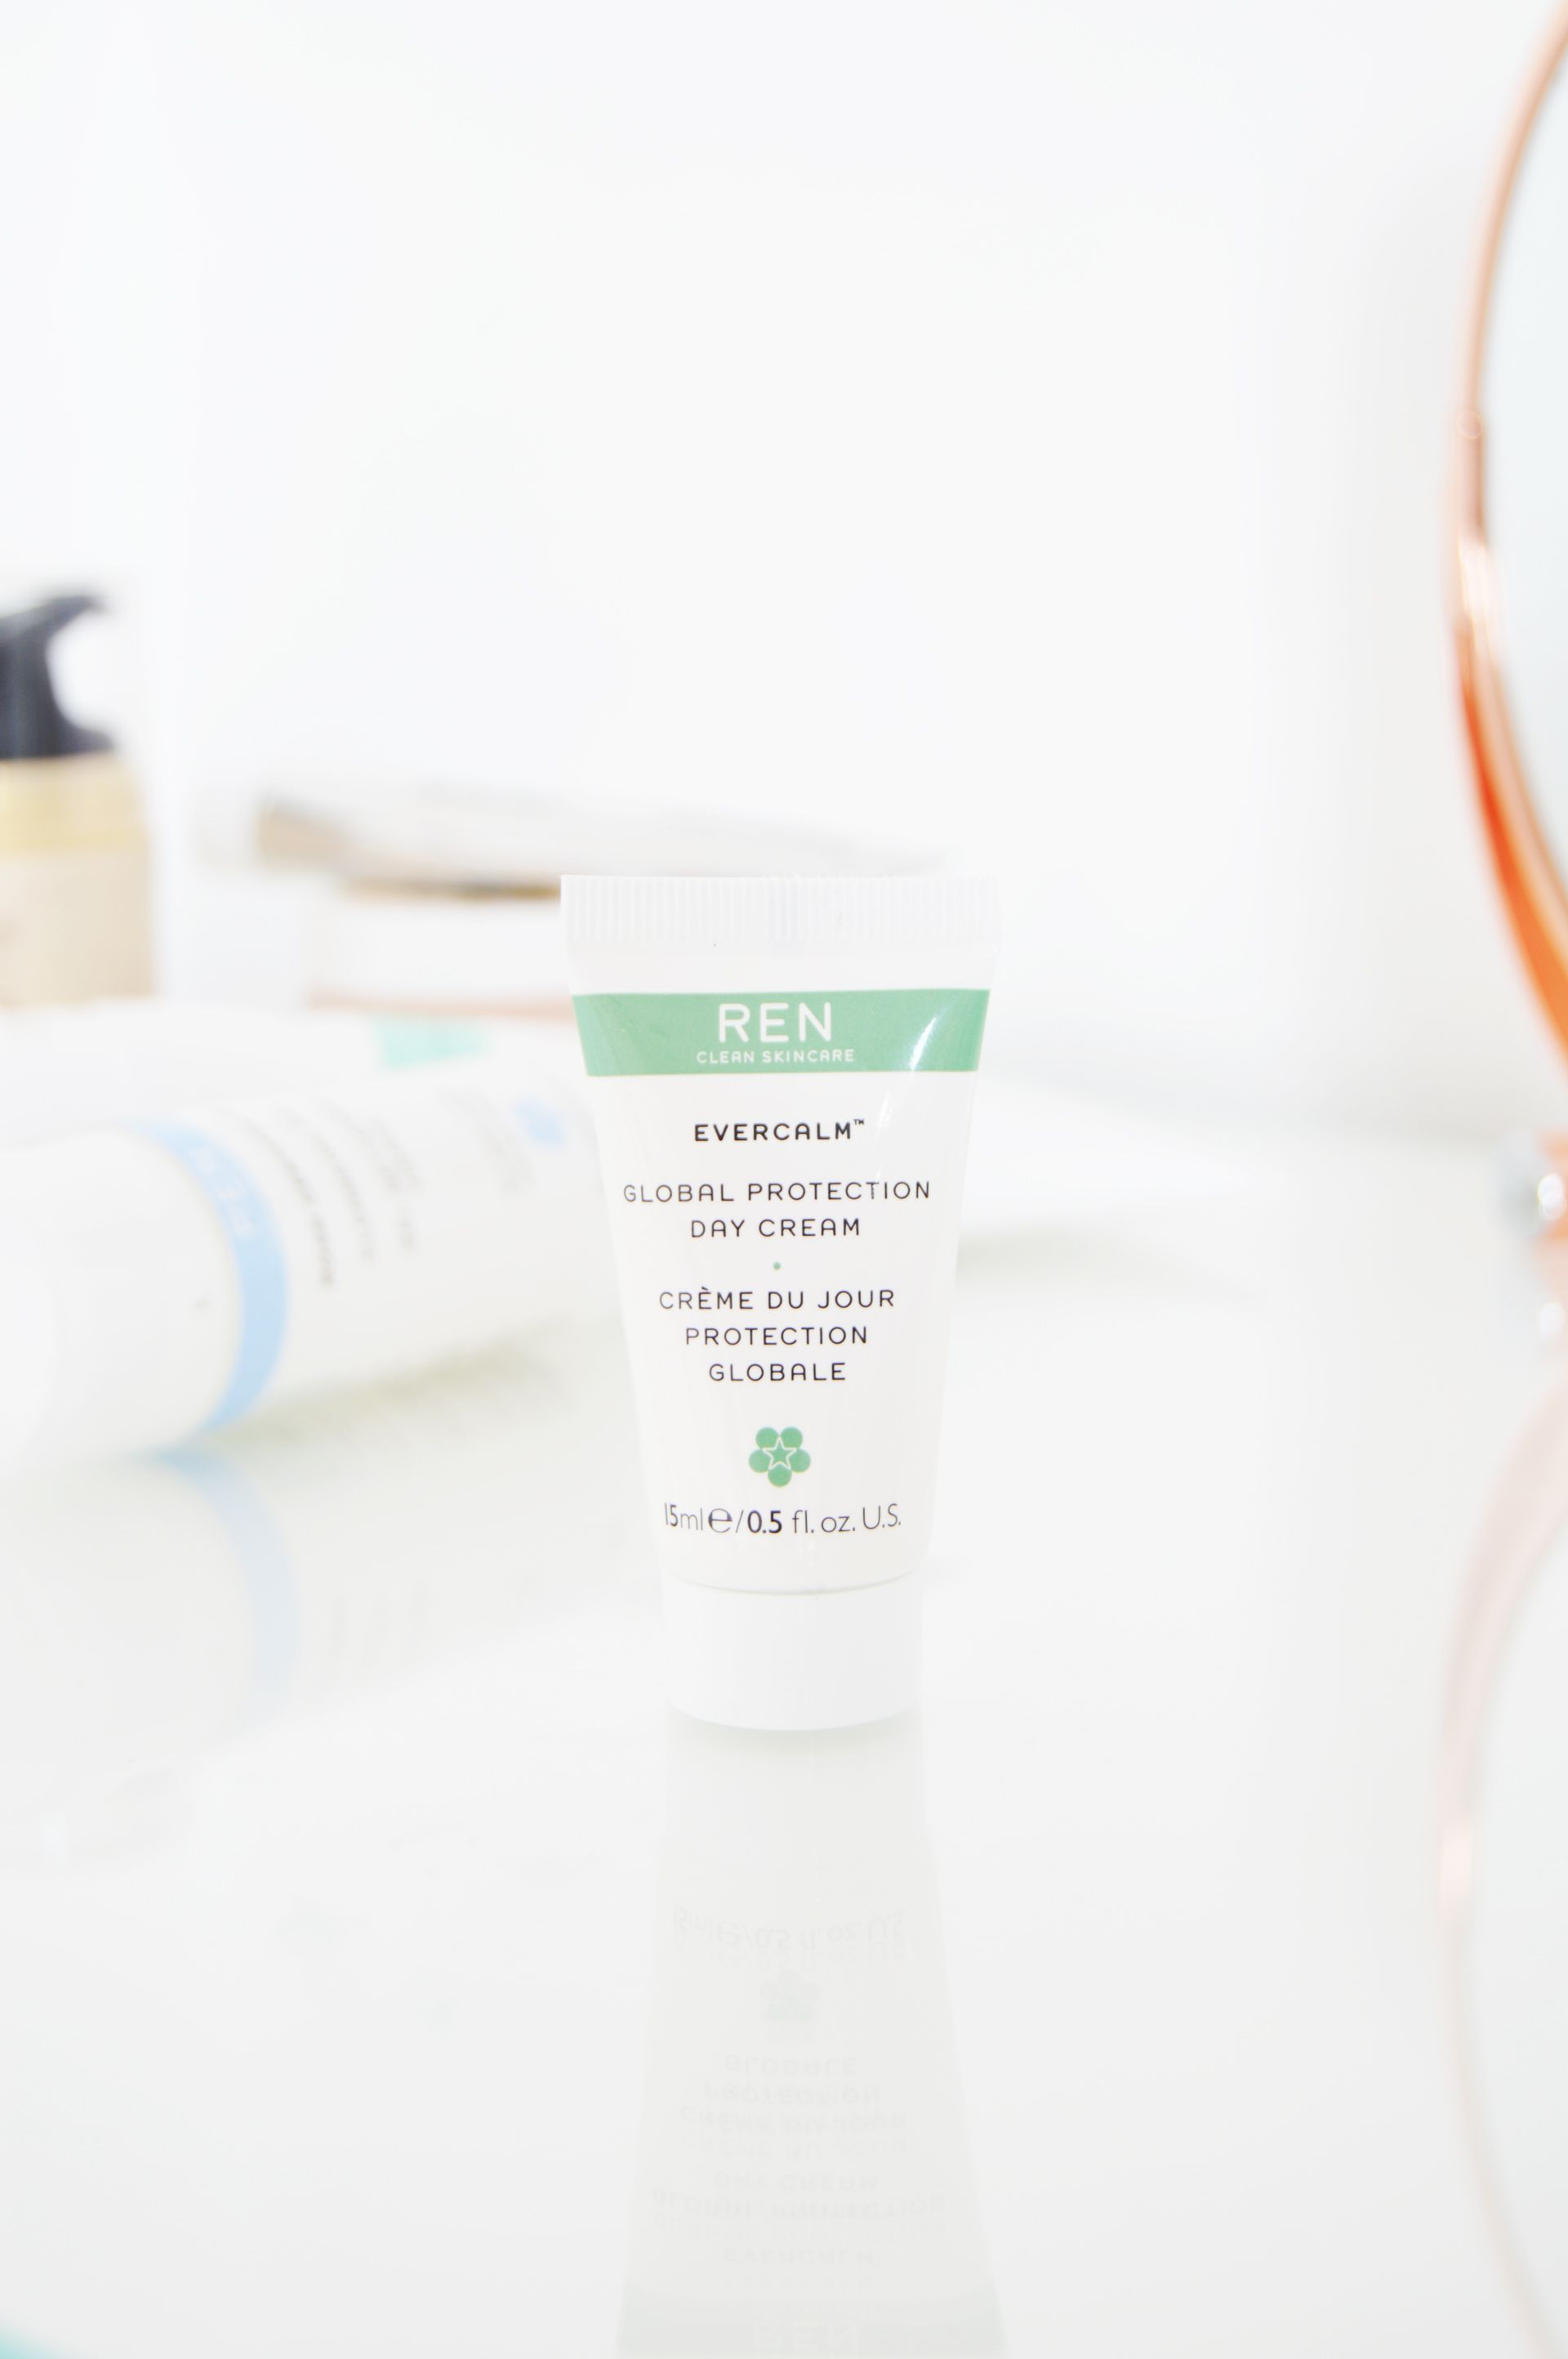 REN Evercalm Global Protection Day Cream is a lightweight and fast absorbing cream. It is suitable for sensitive skin and it leaves soft and hydrated skin. It protects the skin from the effects of pollution .